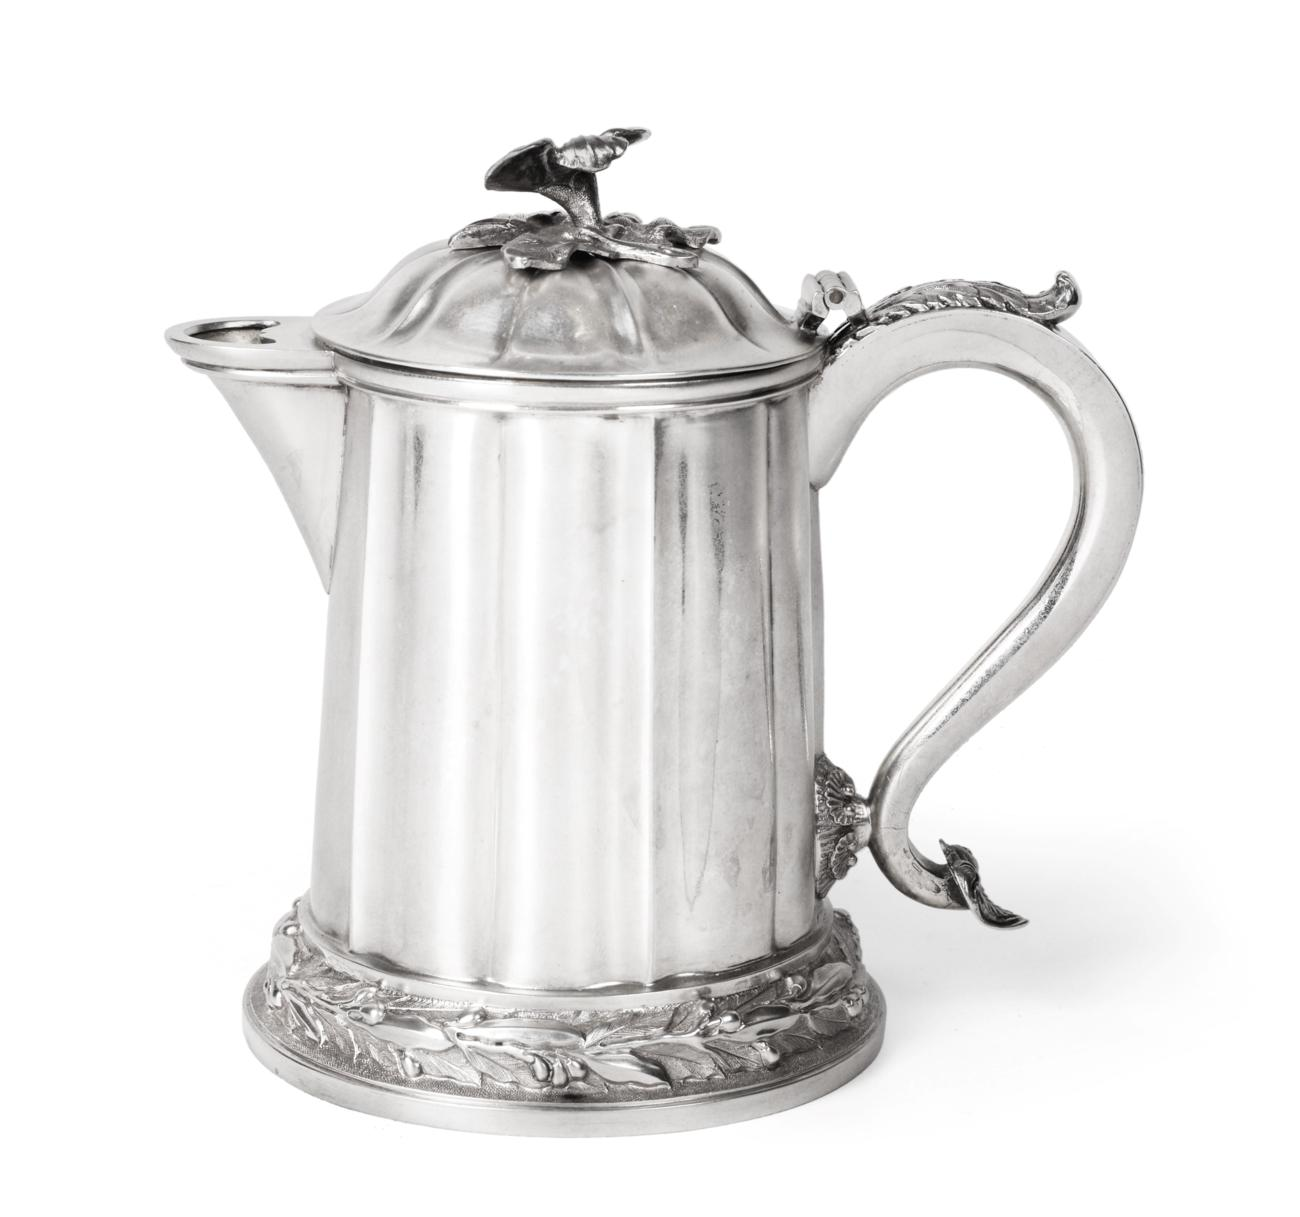 Lot 3024 - An Indian Colonial Silver Jug, by Hamilton and Co., Calcutta, Mid 19th Century, shaped...